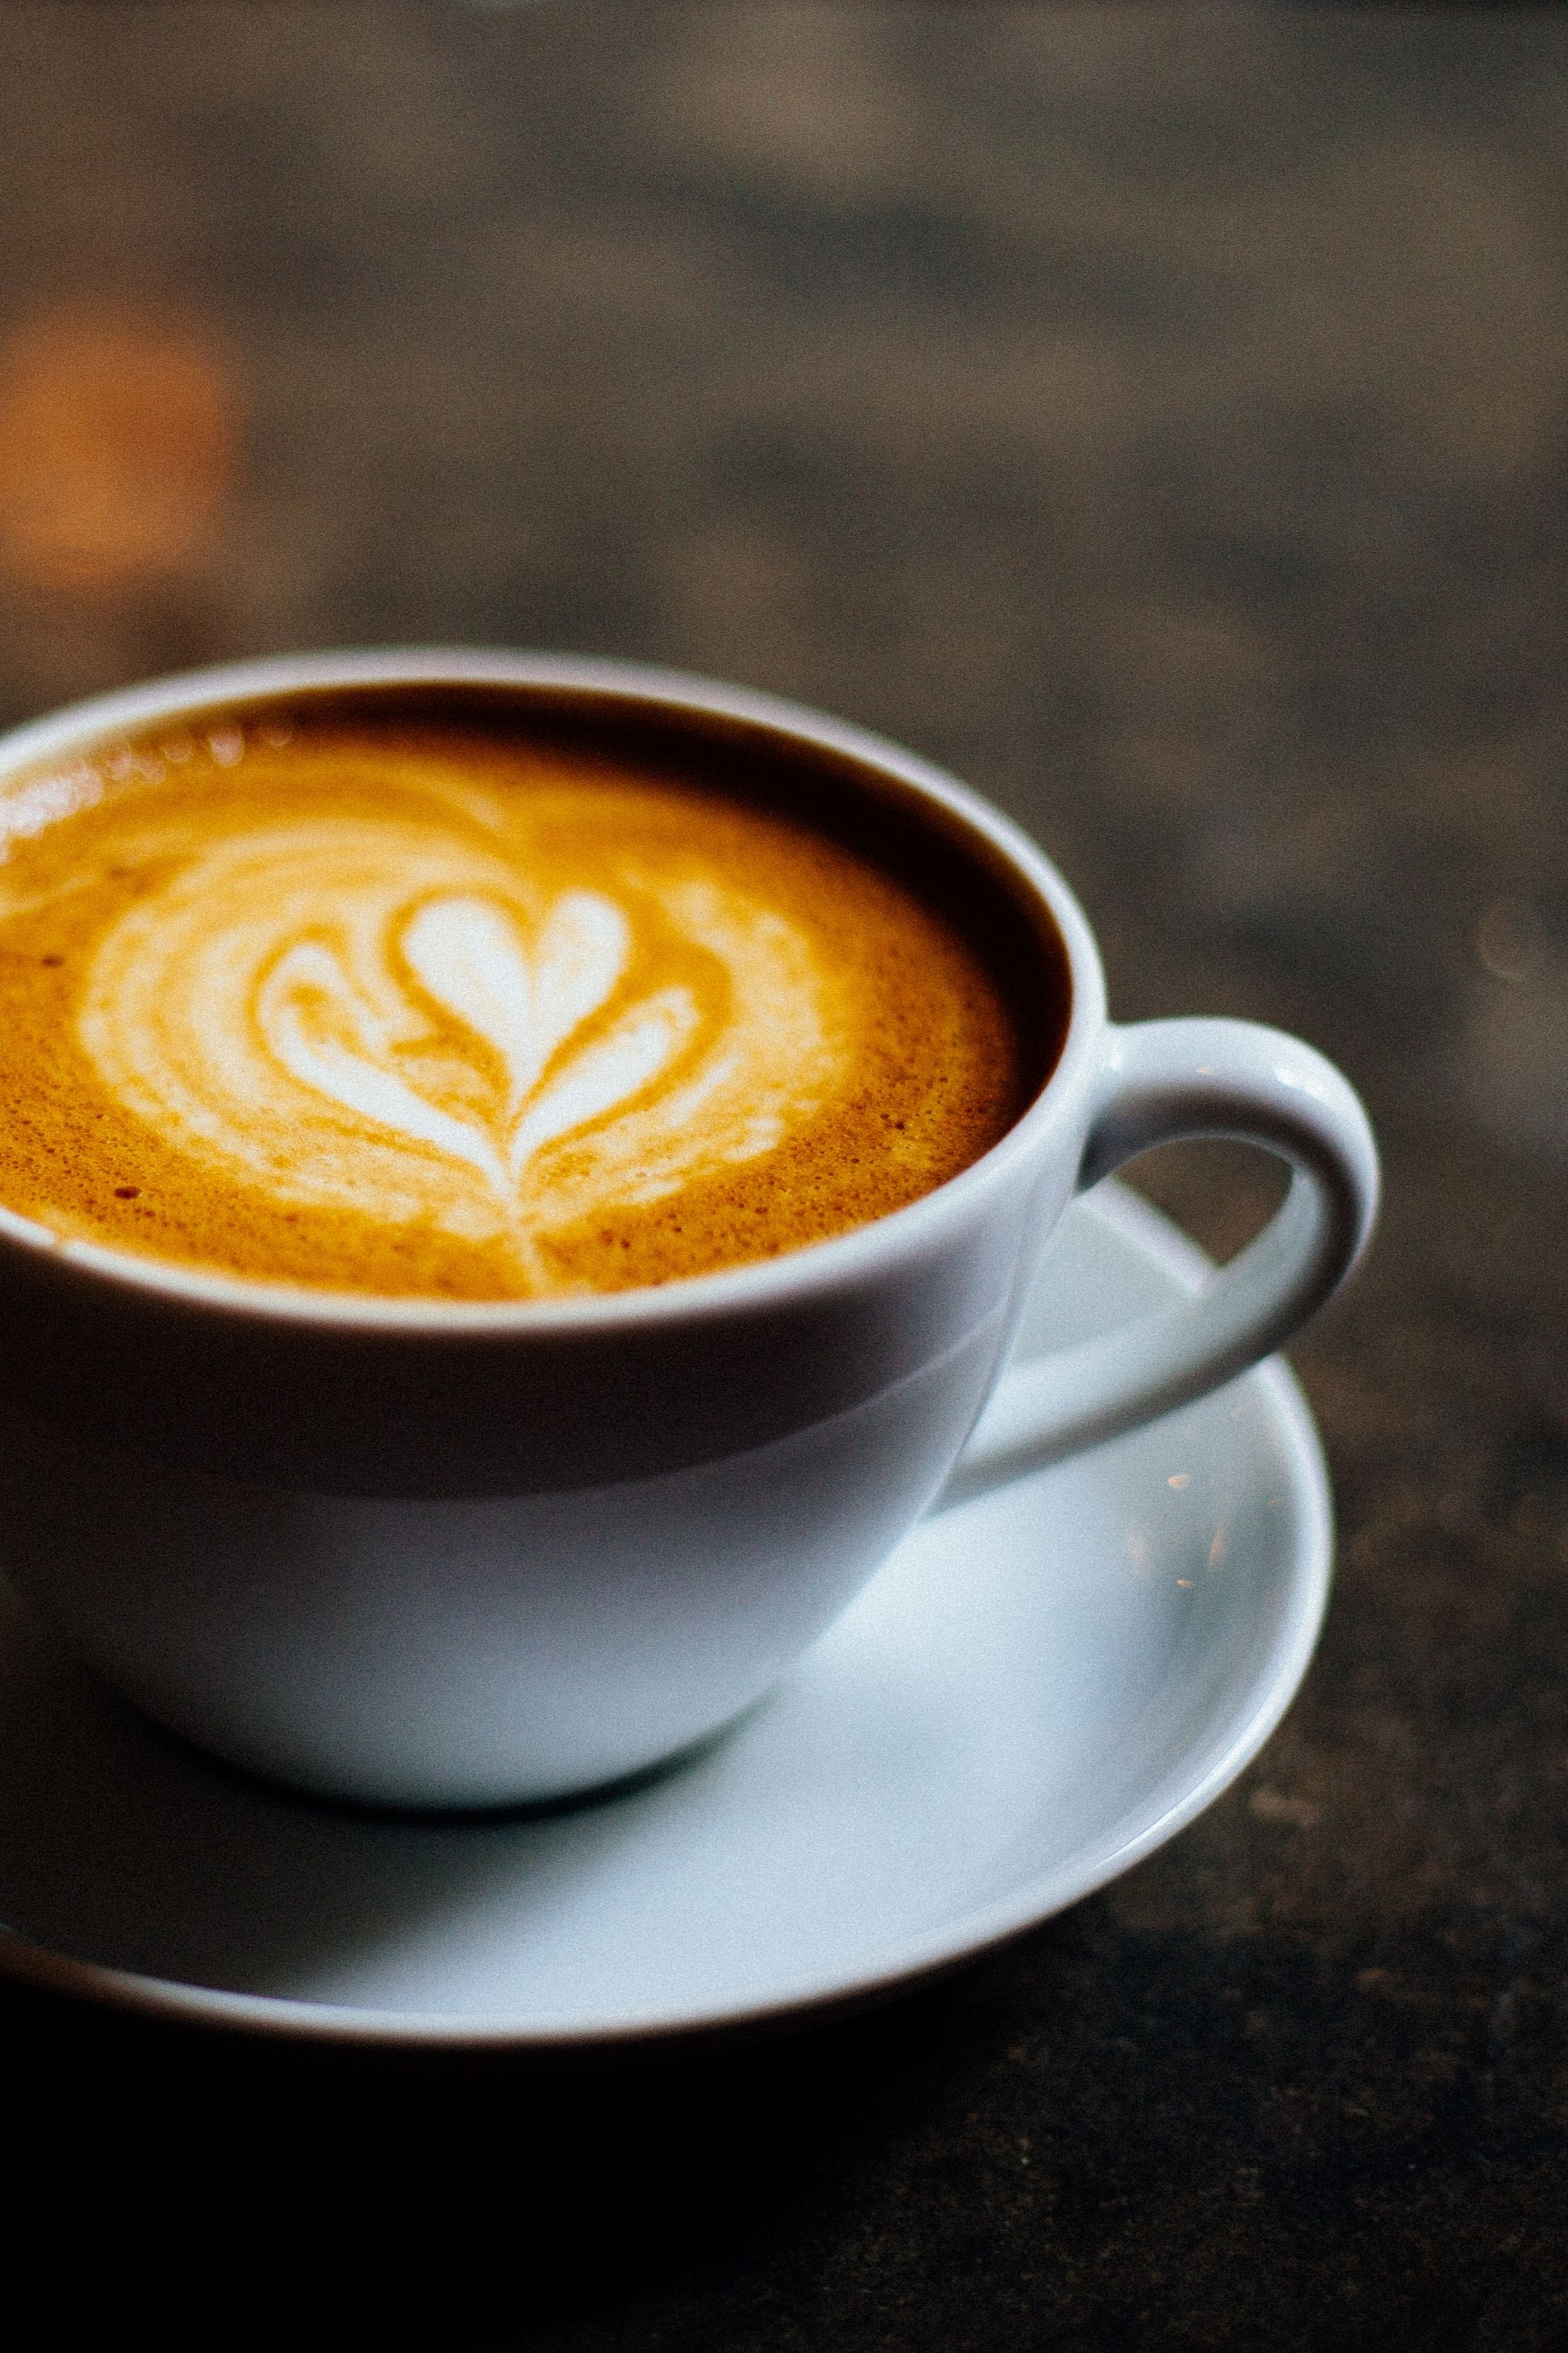 Cup of Coffee with Heart Latte Art in 2020 Melbourne